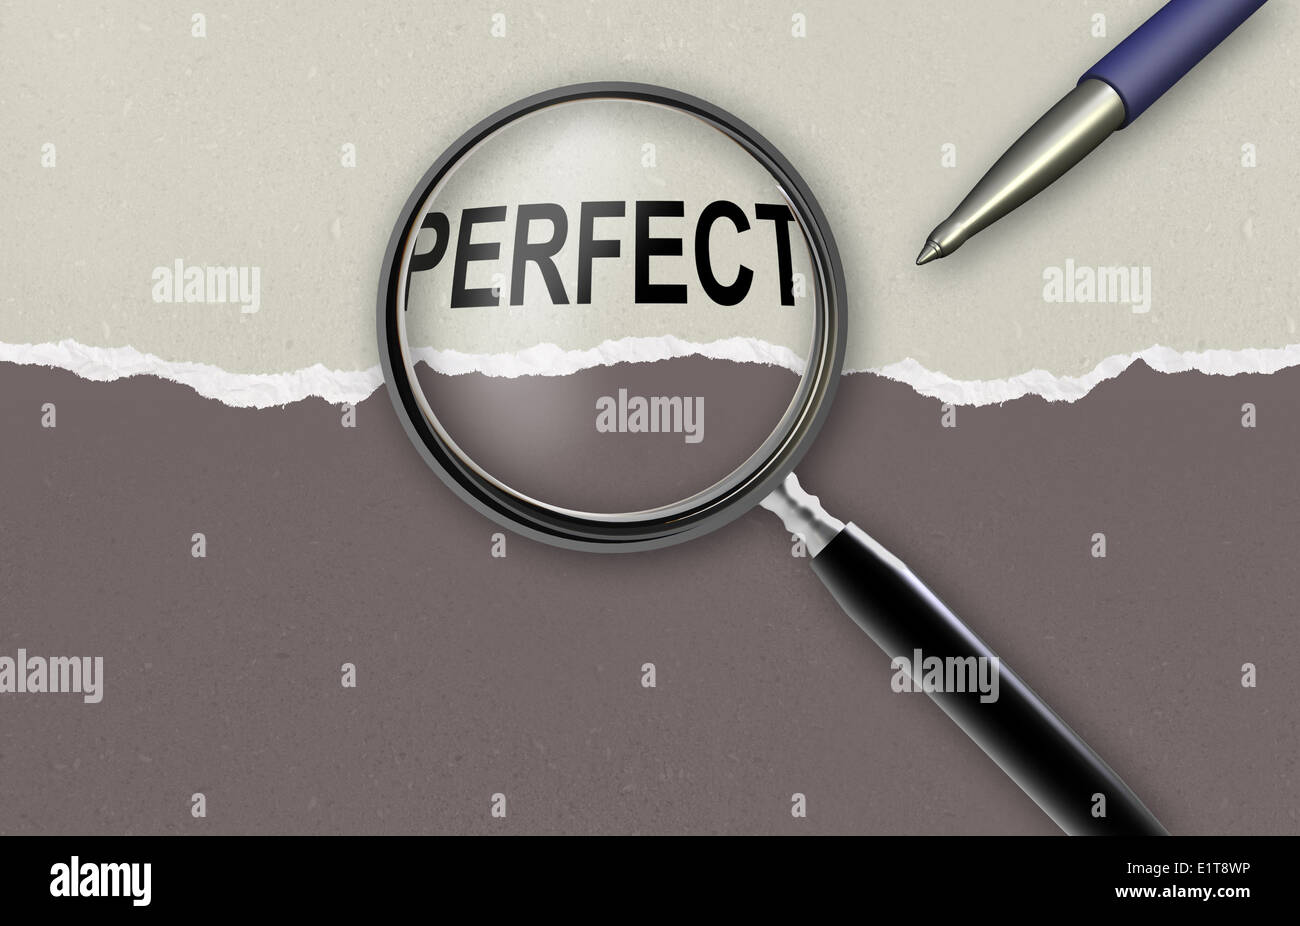 word perfect and magnifying glass on torn paper made in 2d software - Stock Image